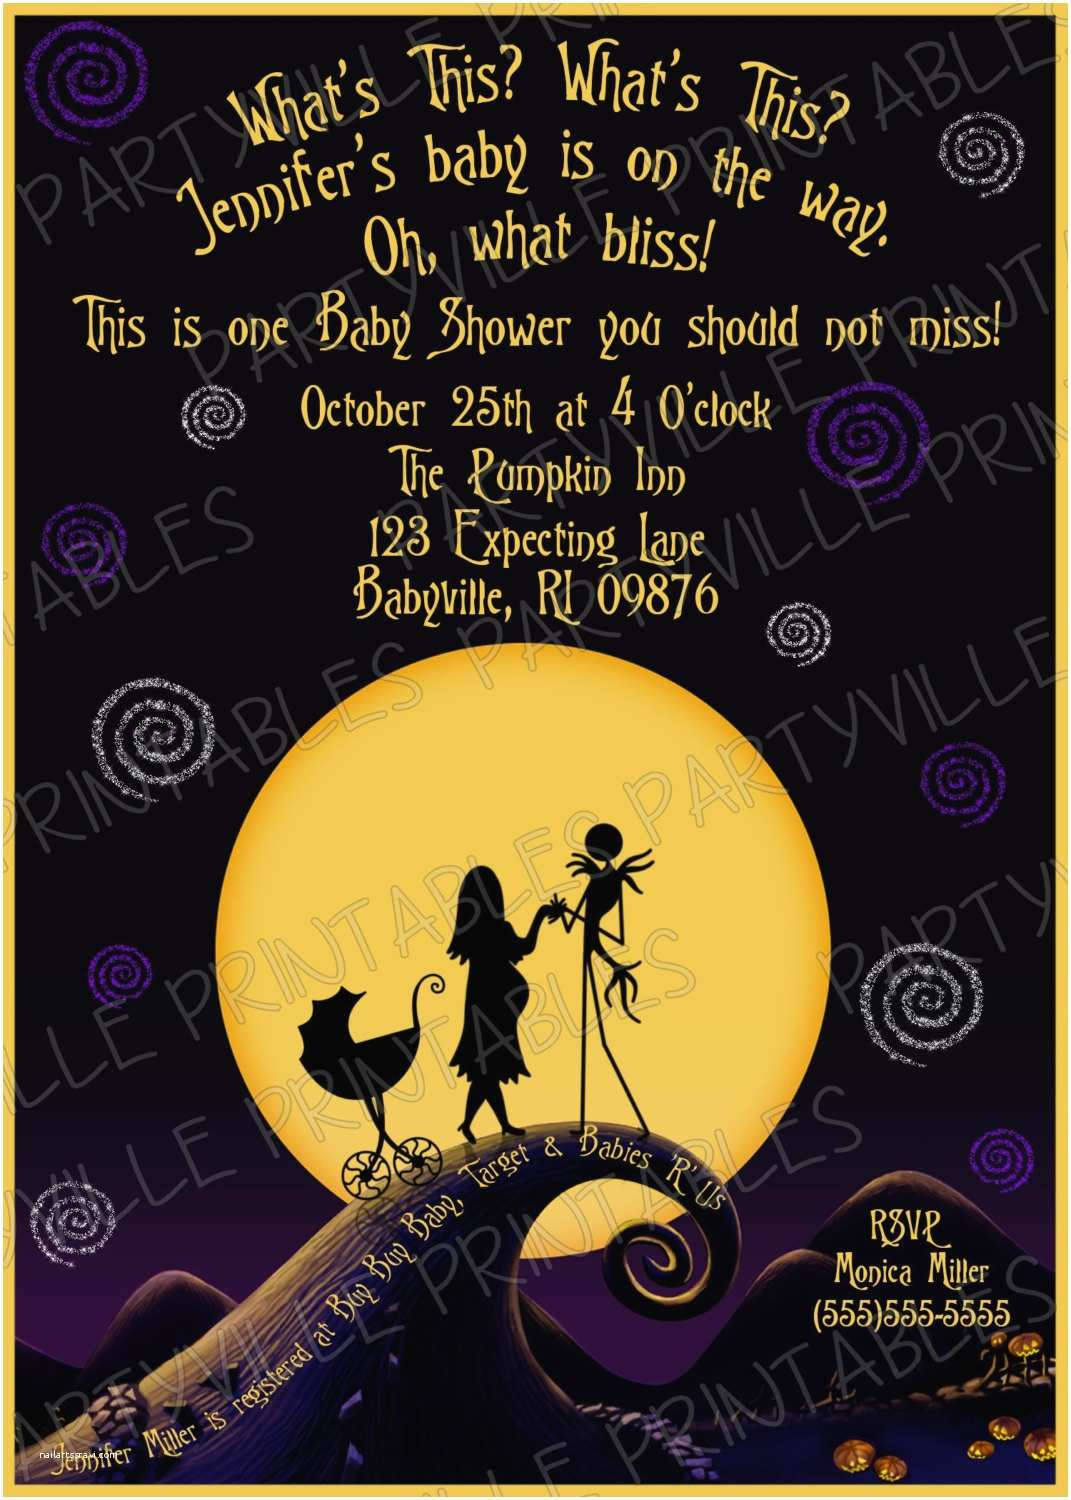 Nightmare before Christmas Wedding Invitations Nightmare before Christmas Invitations Templates Various